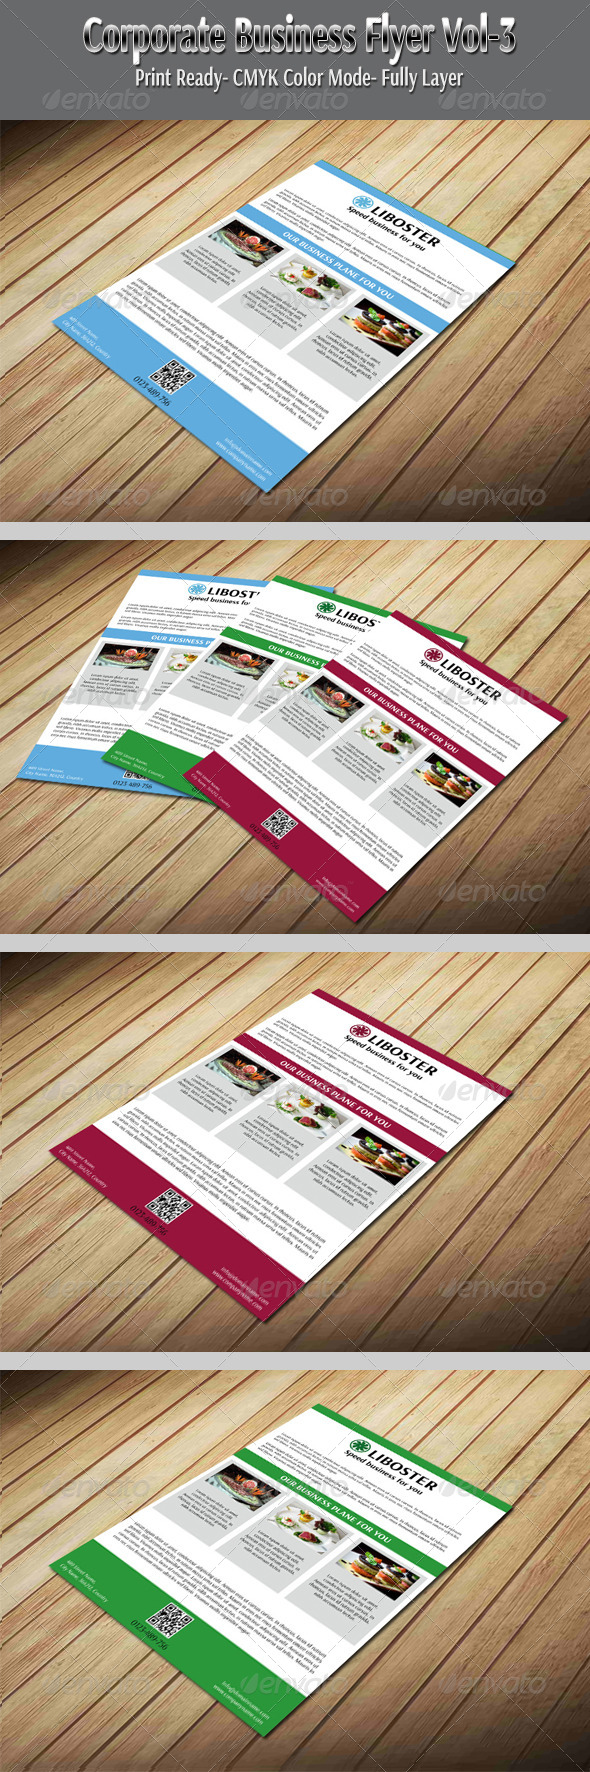 GraphicRiver Corporate Business Flyer Vol-3 5952779